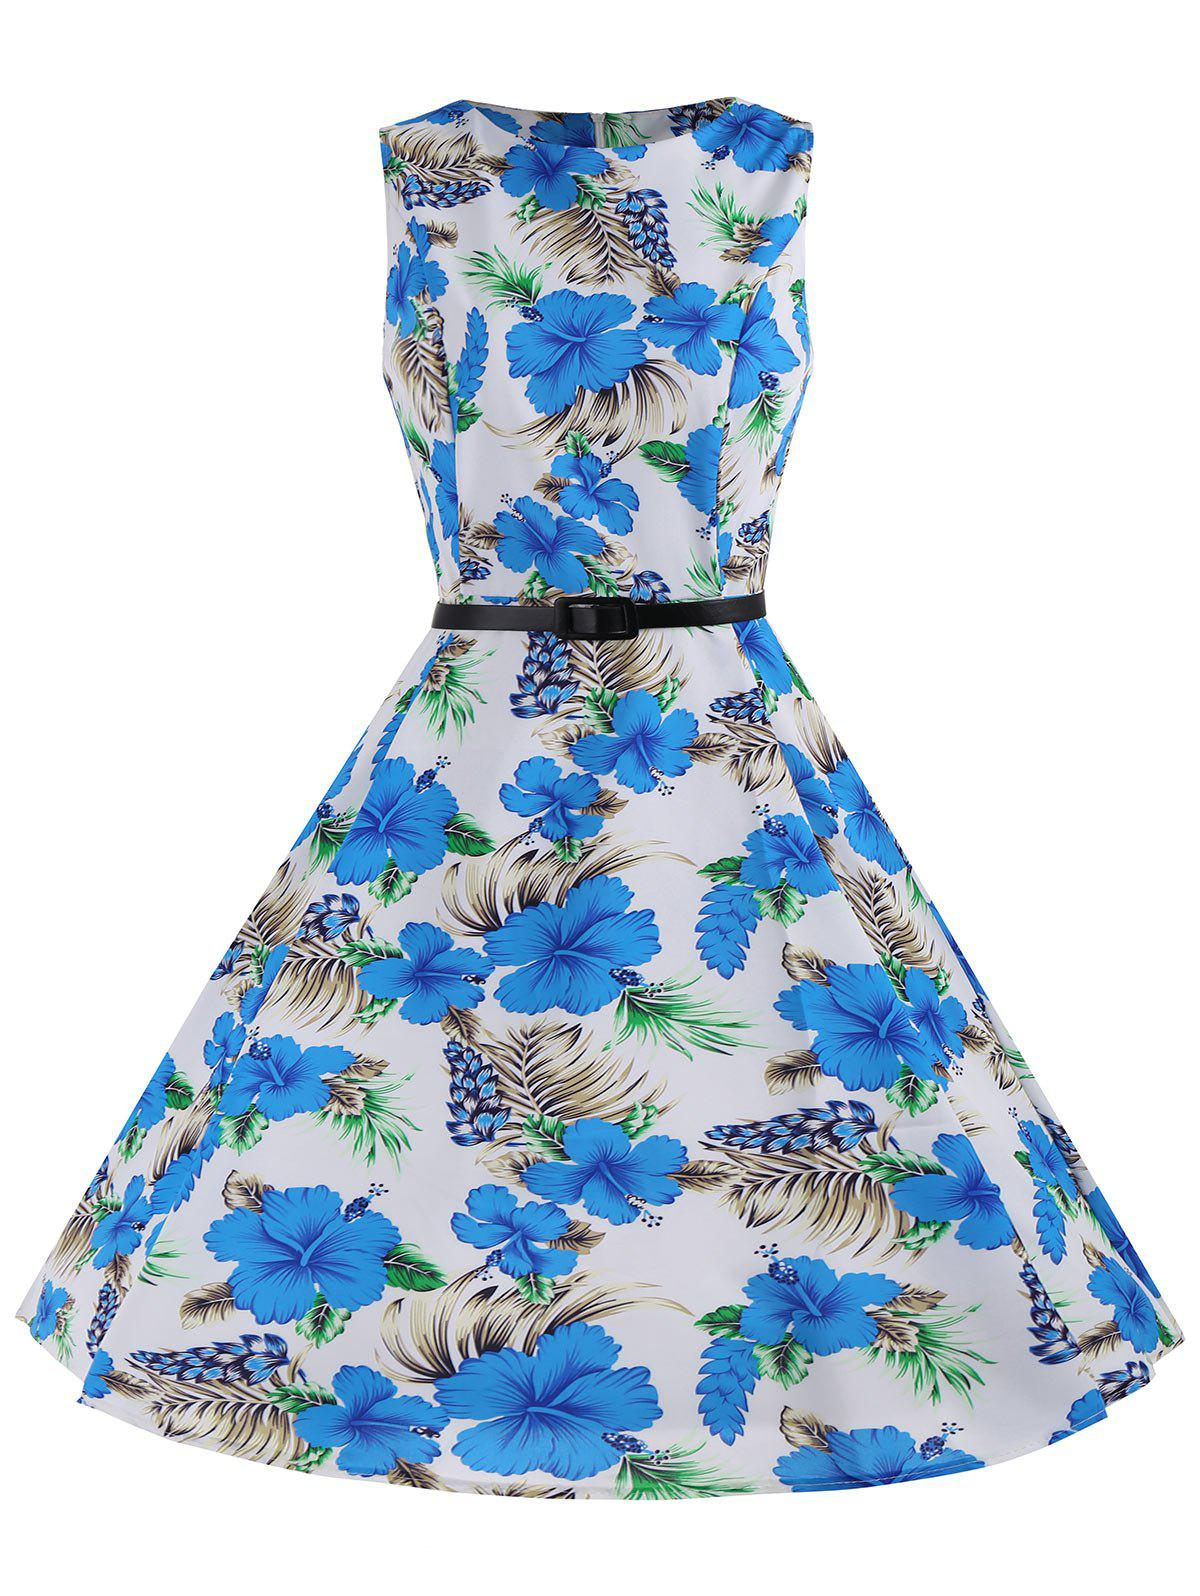 Printed Belted Sleeveless A Line Dress - BLUE/WHITE 2XL